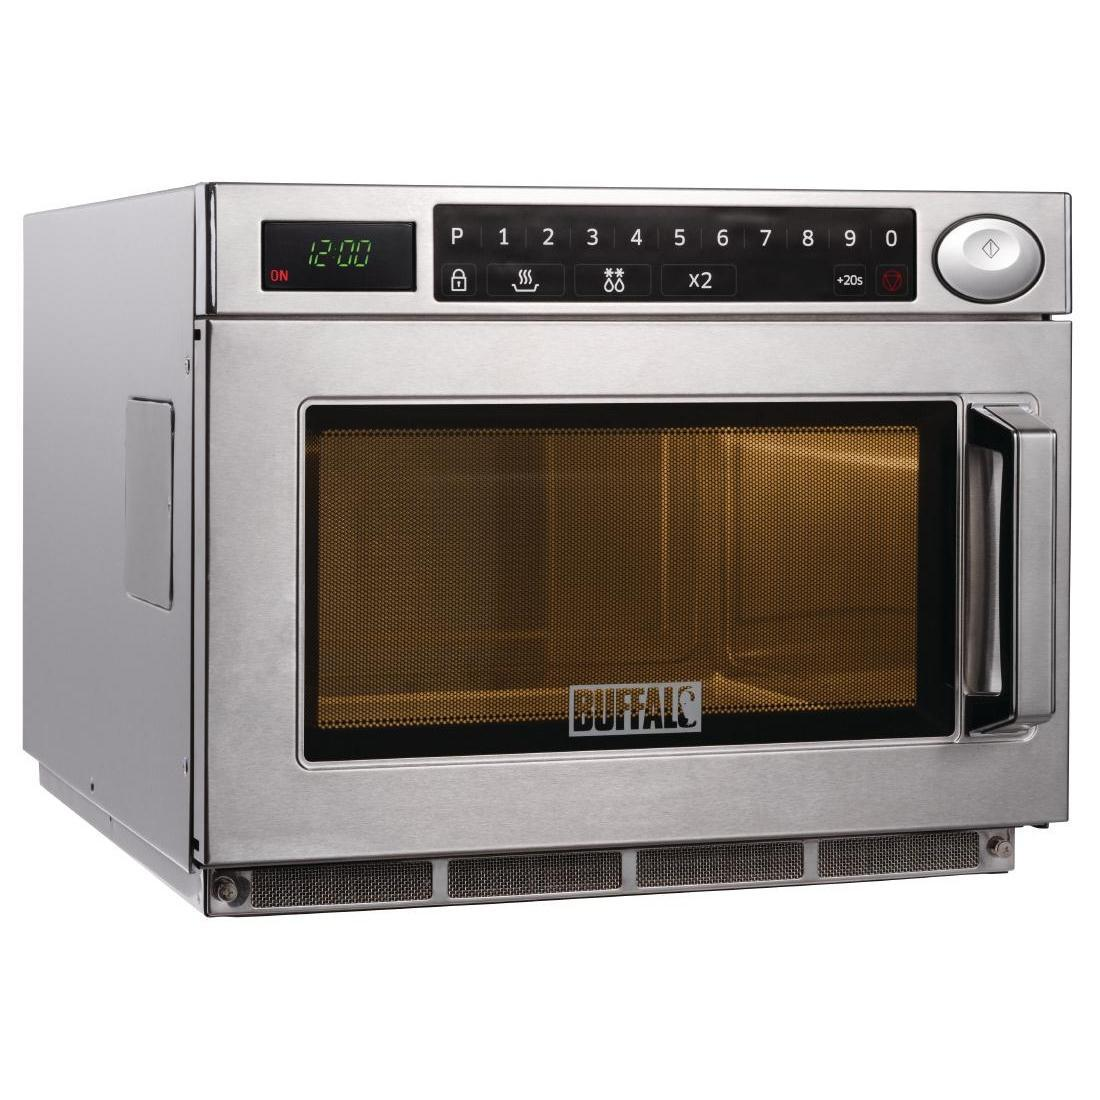 Buffalo Programmable Commercial Microwave Oven 1500W - GK641